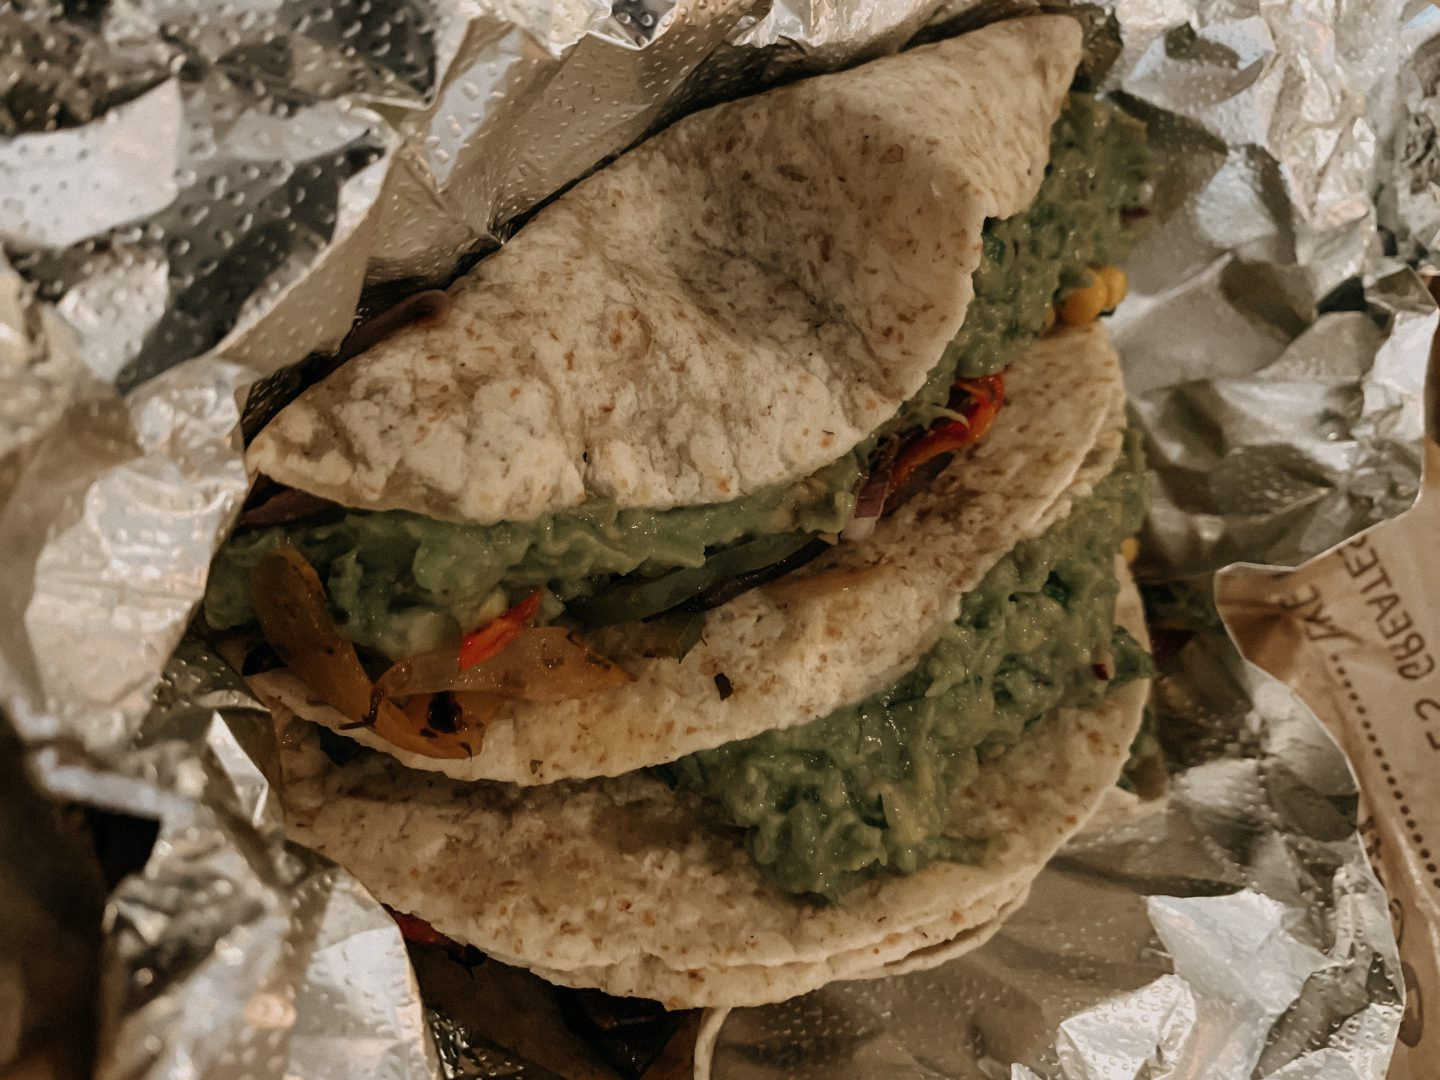 vegan Burritos bei Chipotle Paris